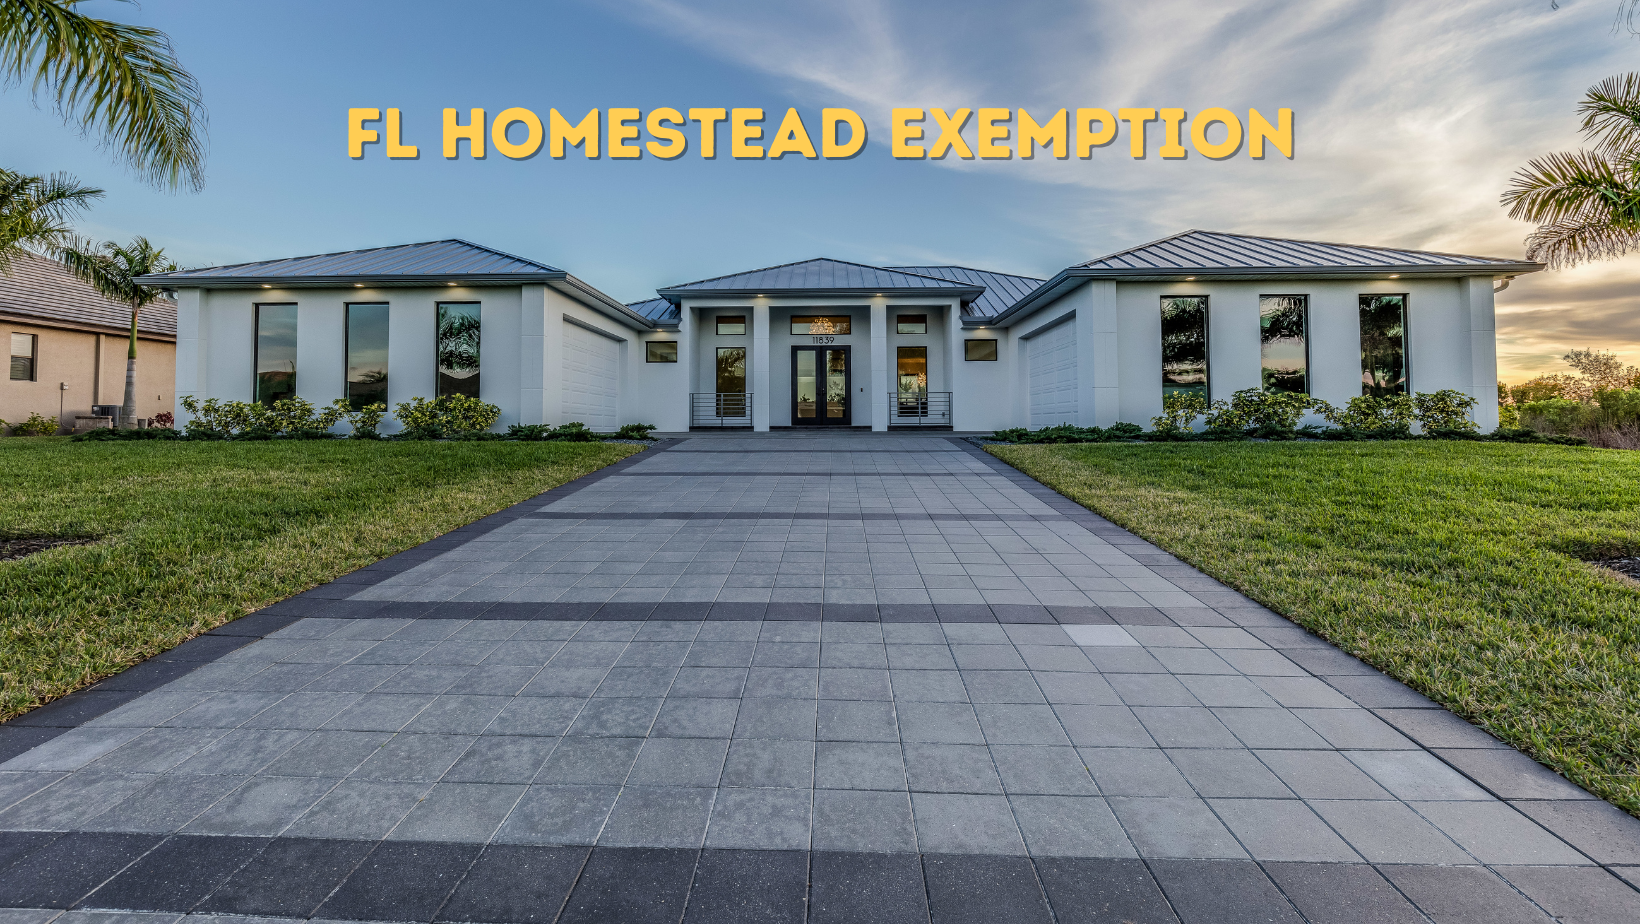 How to Apply for the Florida Homestead Tax Exemption